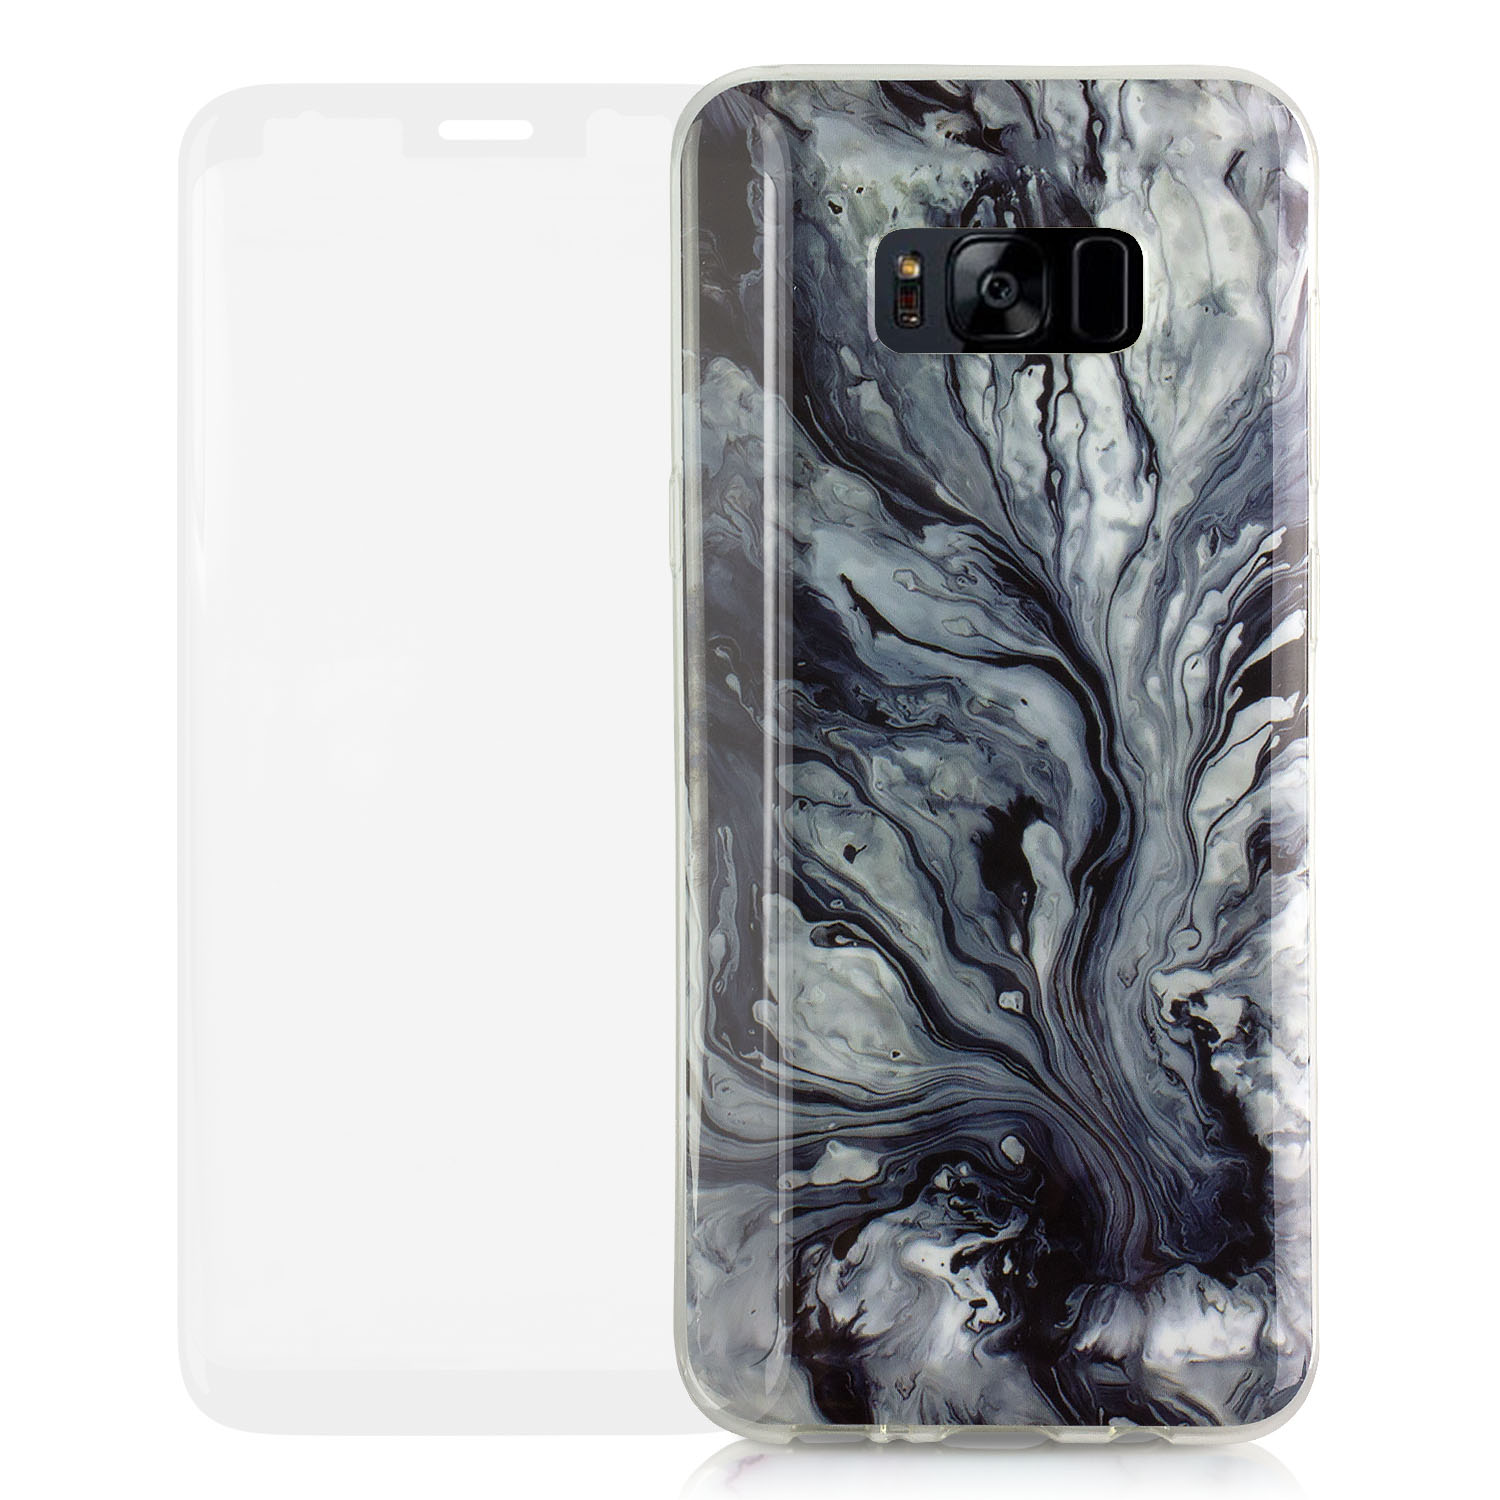 Samsung Galaxy S8 Plus Fully Protected [Bundle Case with Tempered Glass] Marbled Stone (White/Black) by TortugaArmor Transparent Flexible Soft Rubber Gel TPU Protective Shell Hybrid Bumper Case